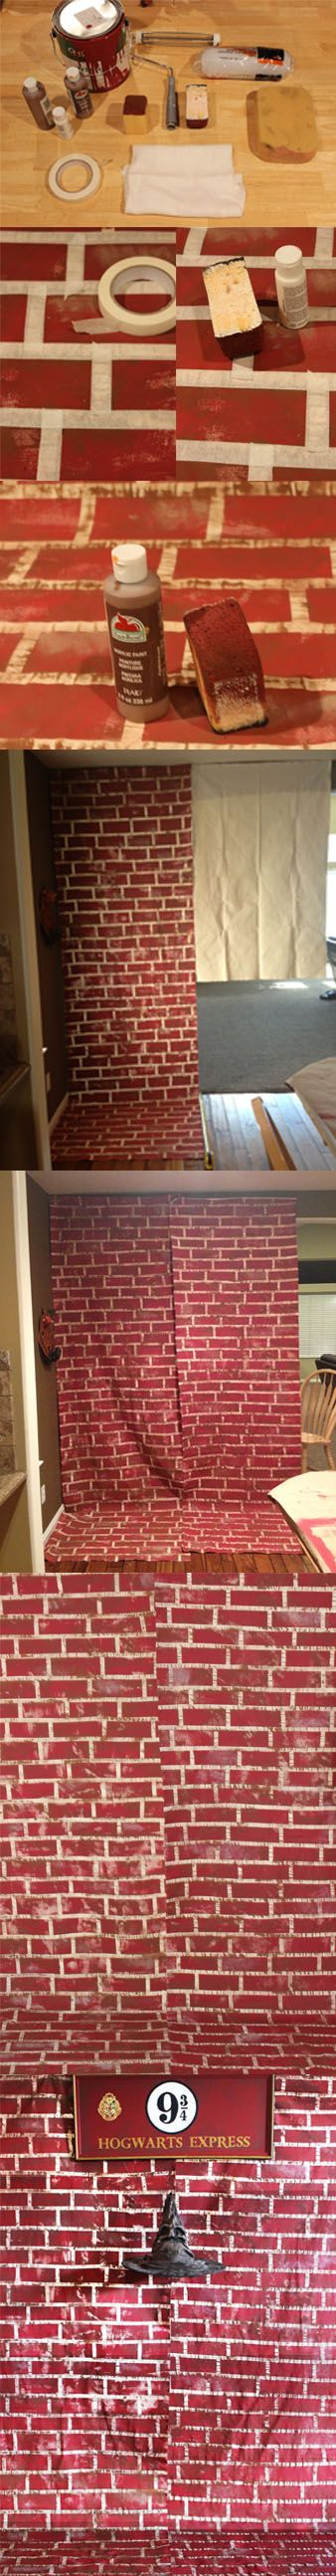 DIY Harry Potter Platform 9 3/4 Brick Wall